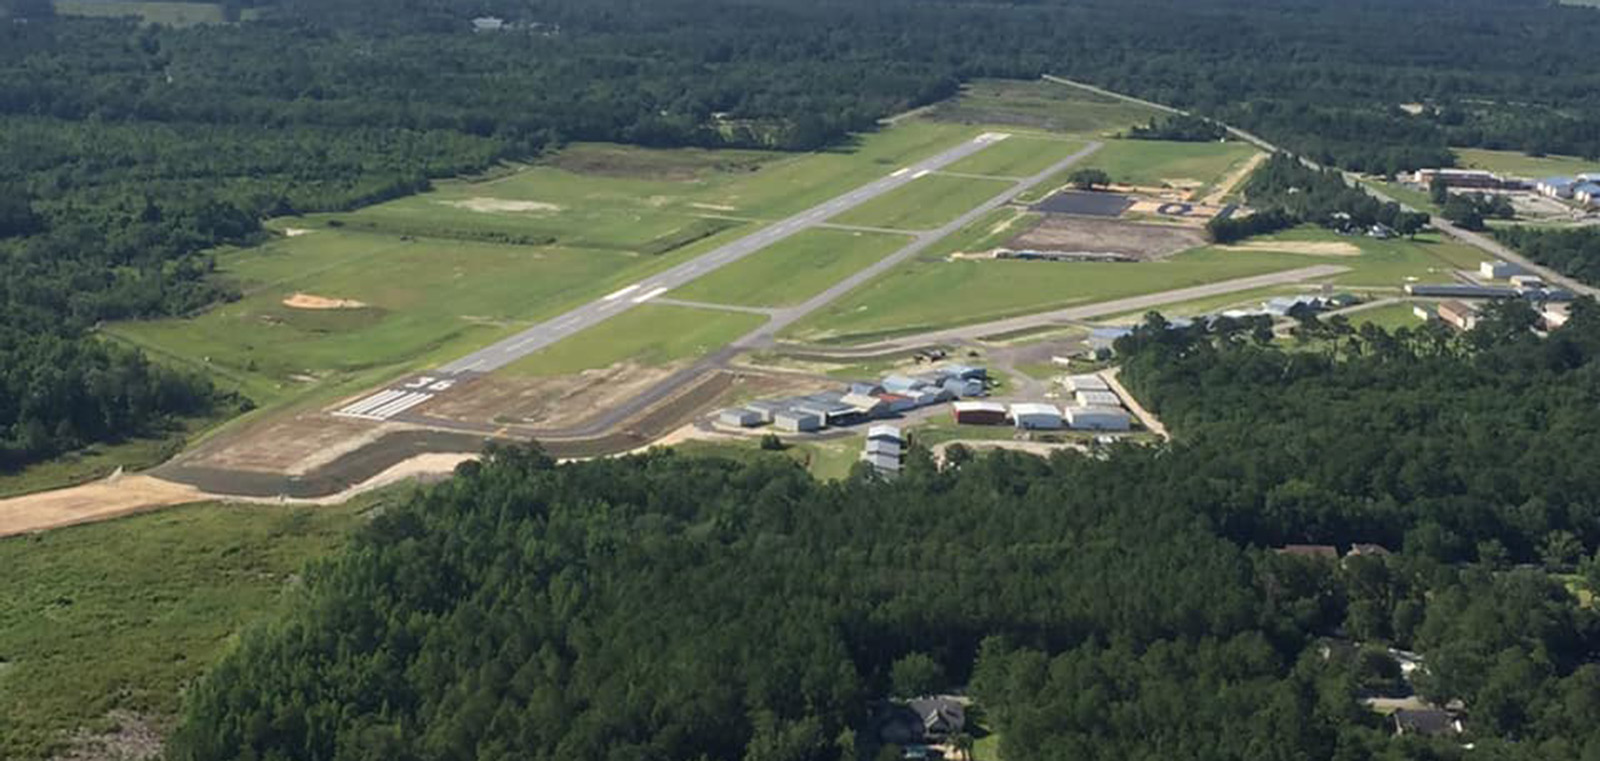 NEW RUNWAY PROGRAM COMPLETED RUNWAY AERIAL RIDGELAND-CLAUDE DEAN AIRPORT(3J1)